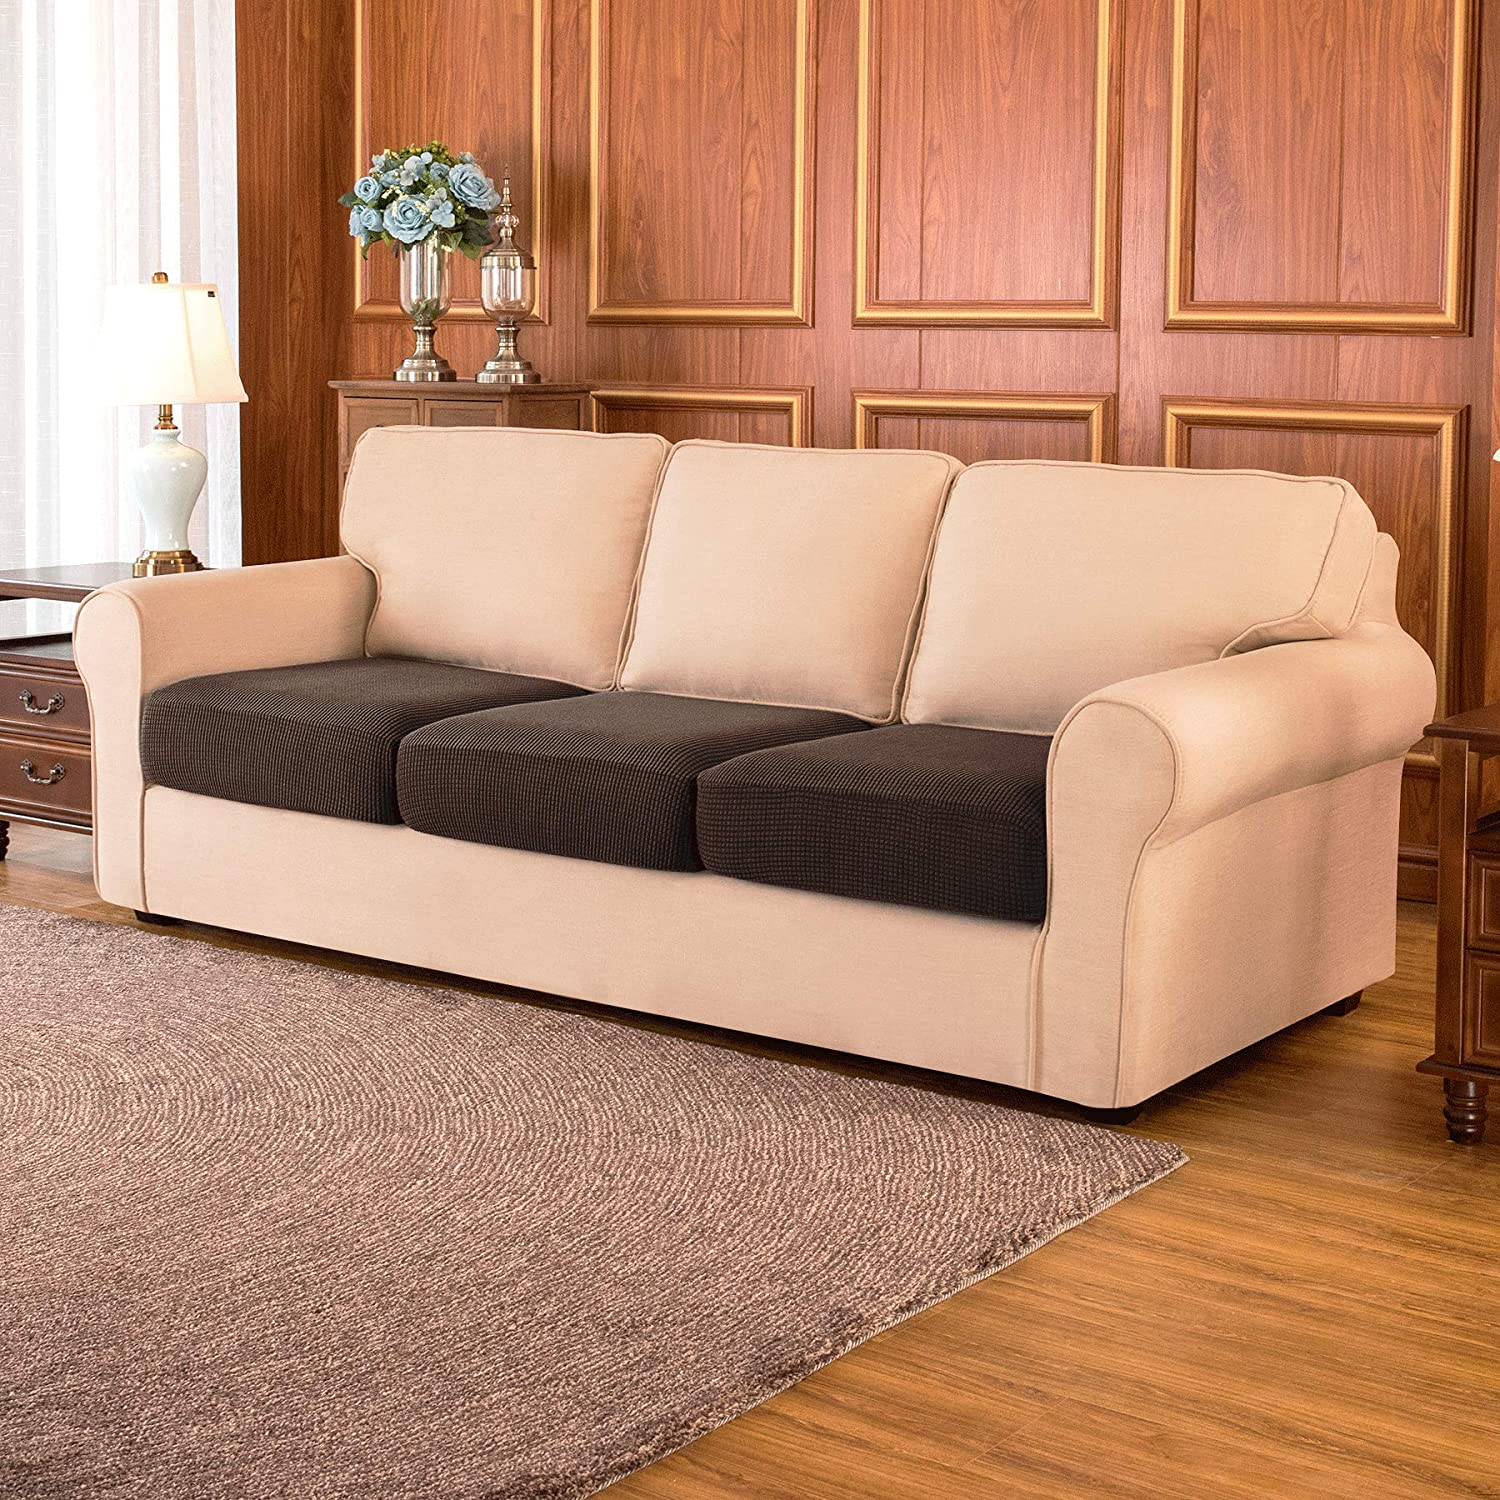 subrtex Couch Slipcover Chair Slip Loveseat Stretch Durable Sofa Cushion Cover Spandex Elastic Furniture Protector for Settee Seat Black 3 Piece